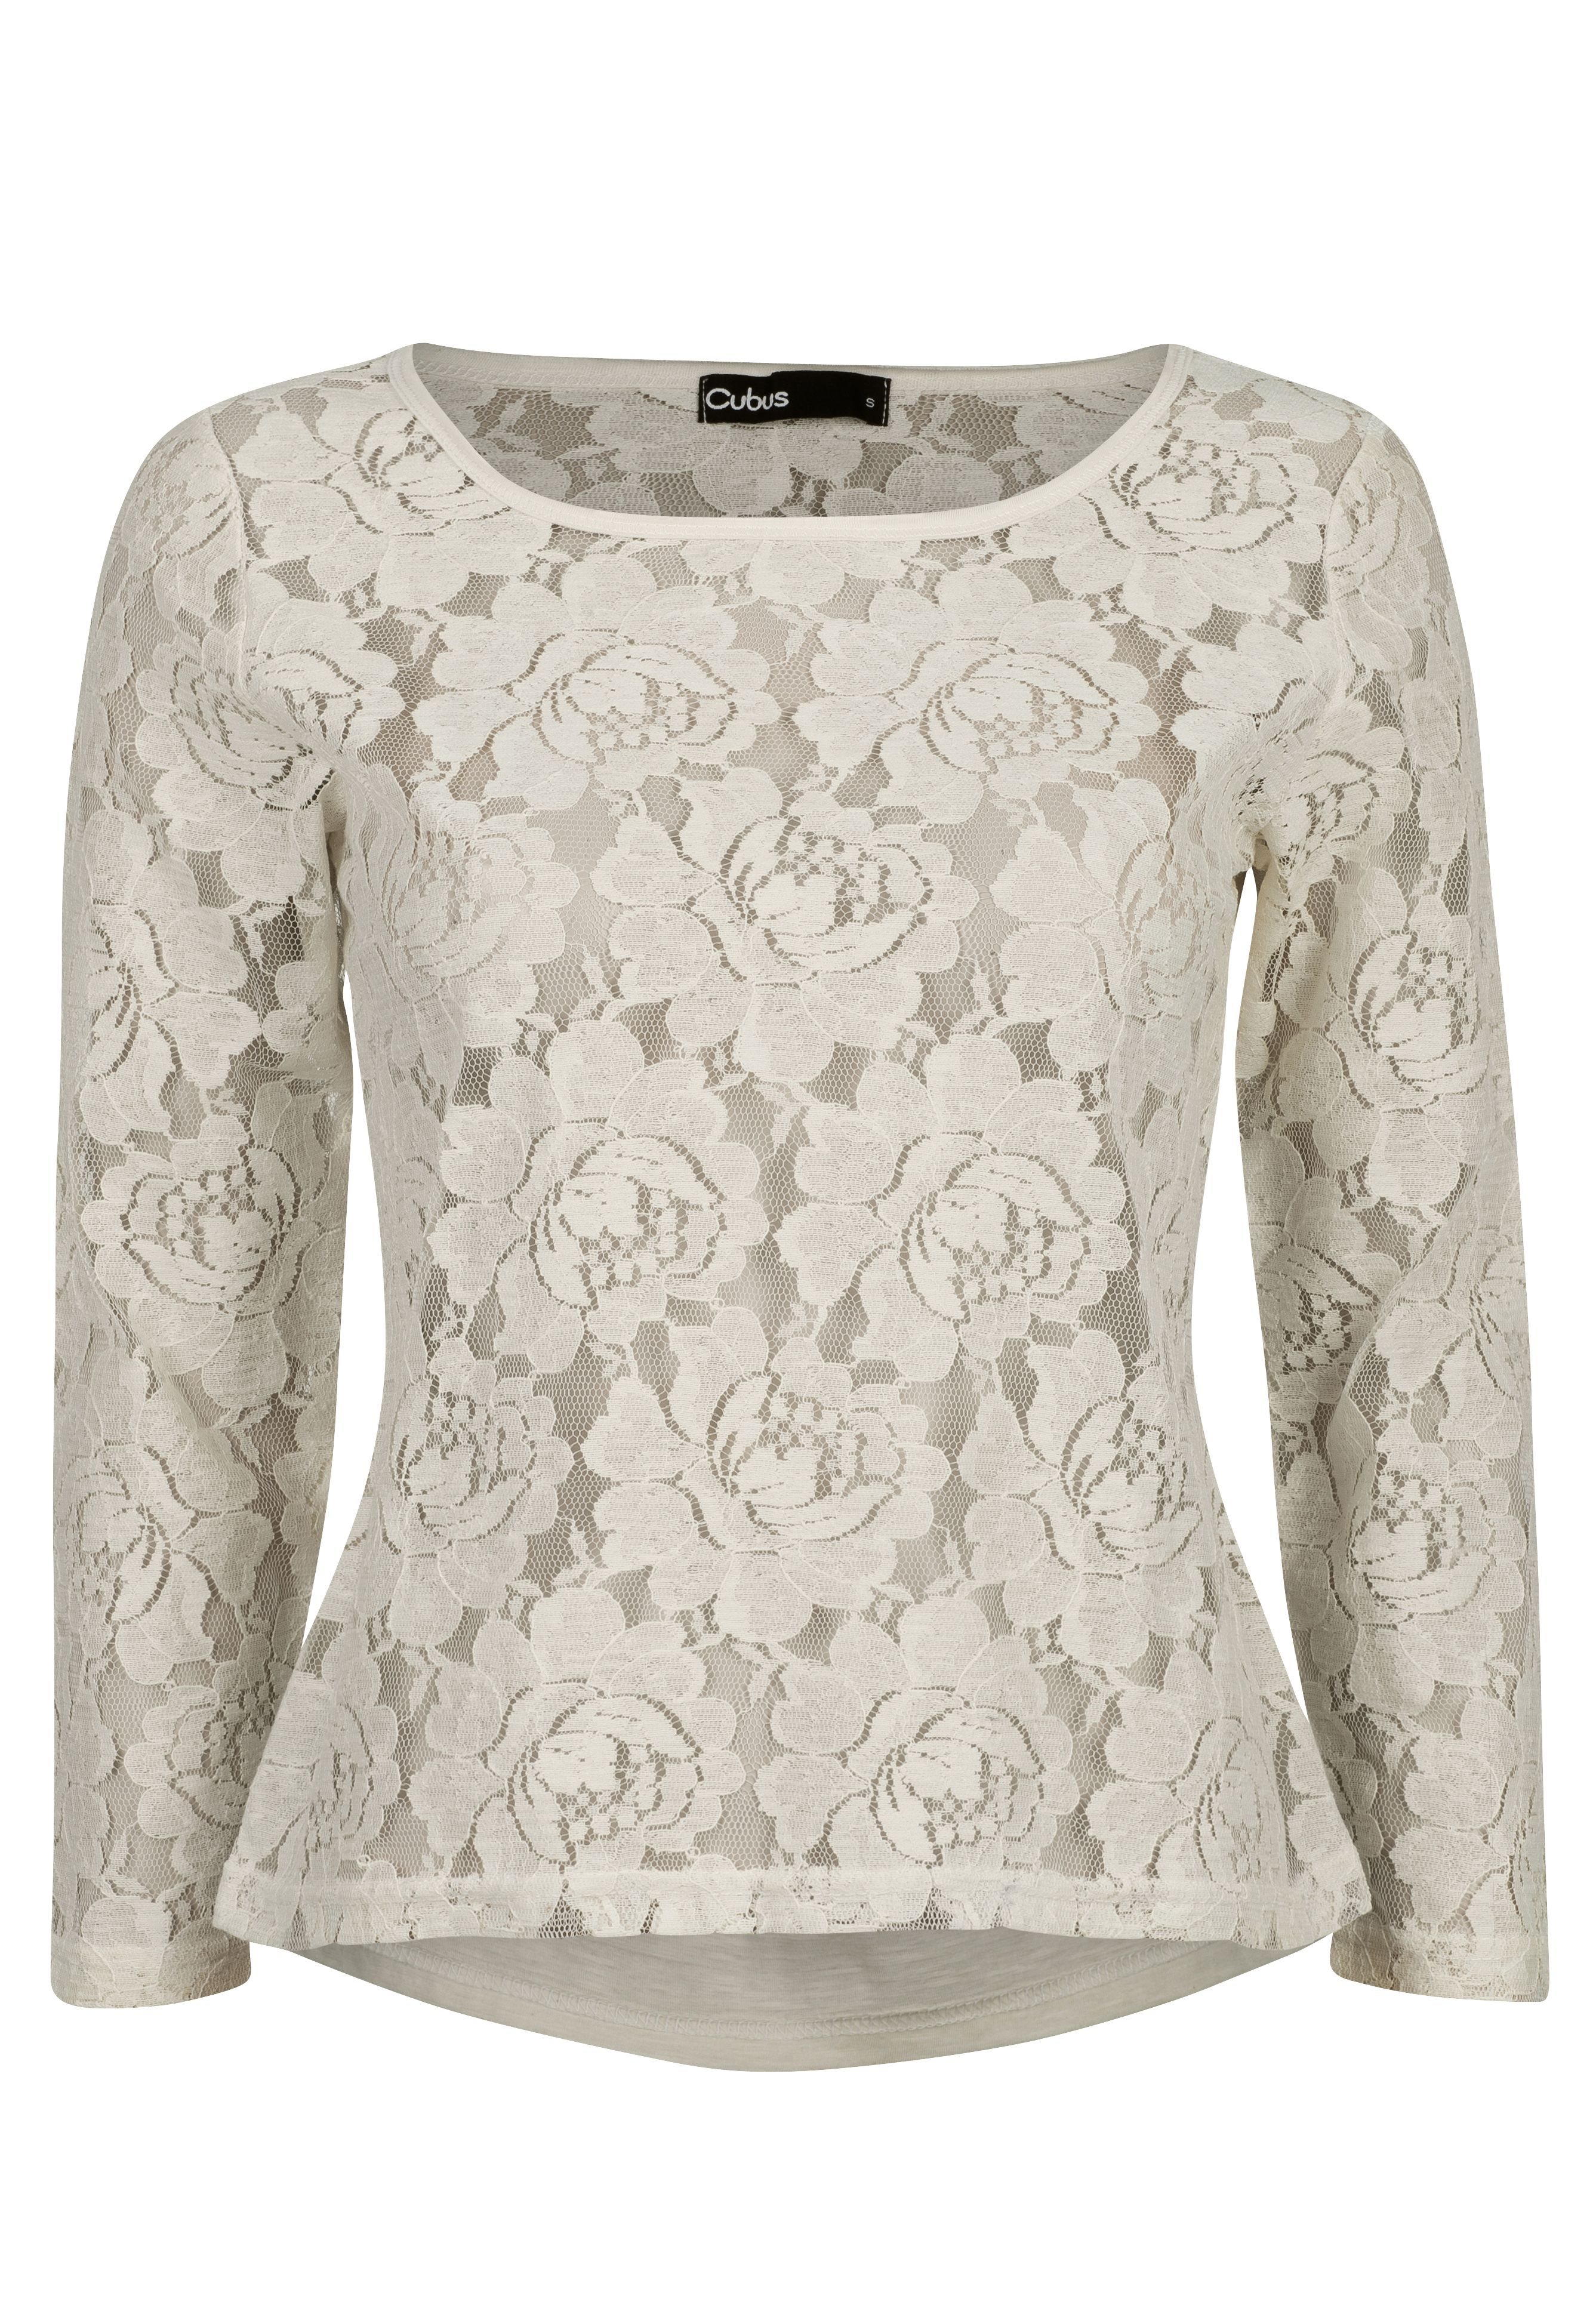 cubus lace top